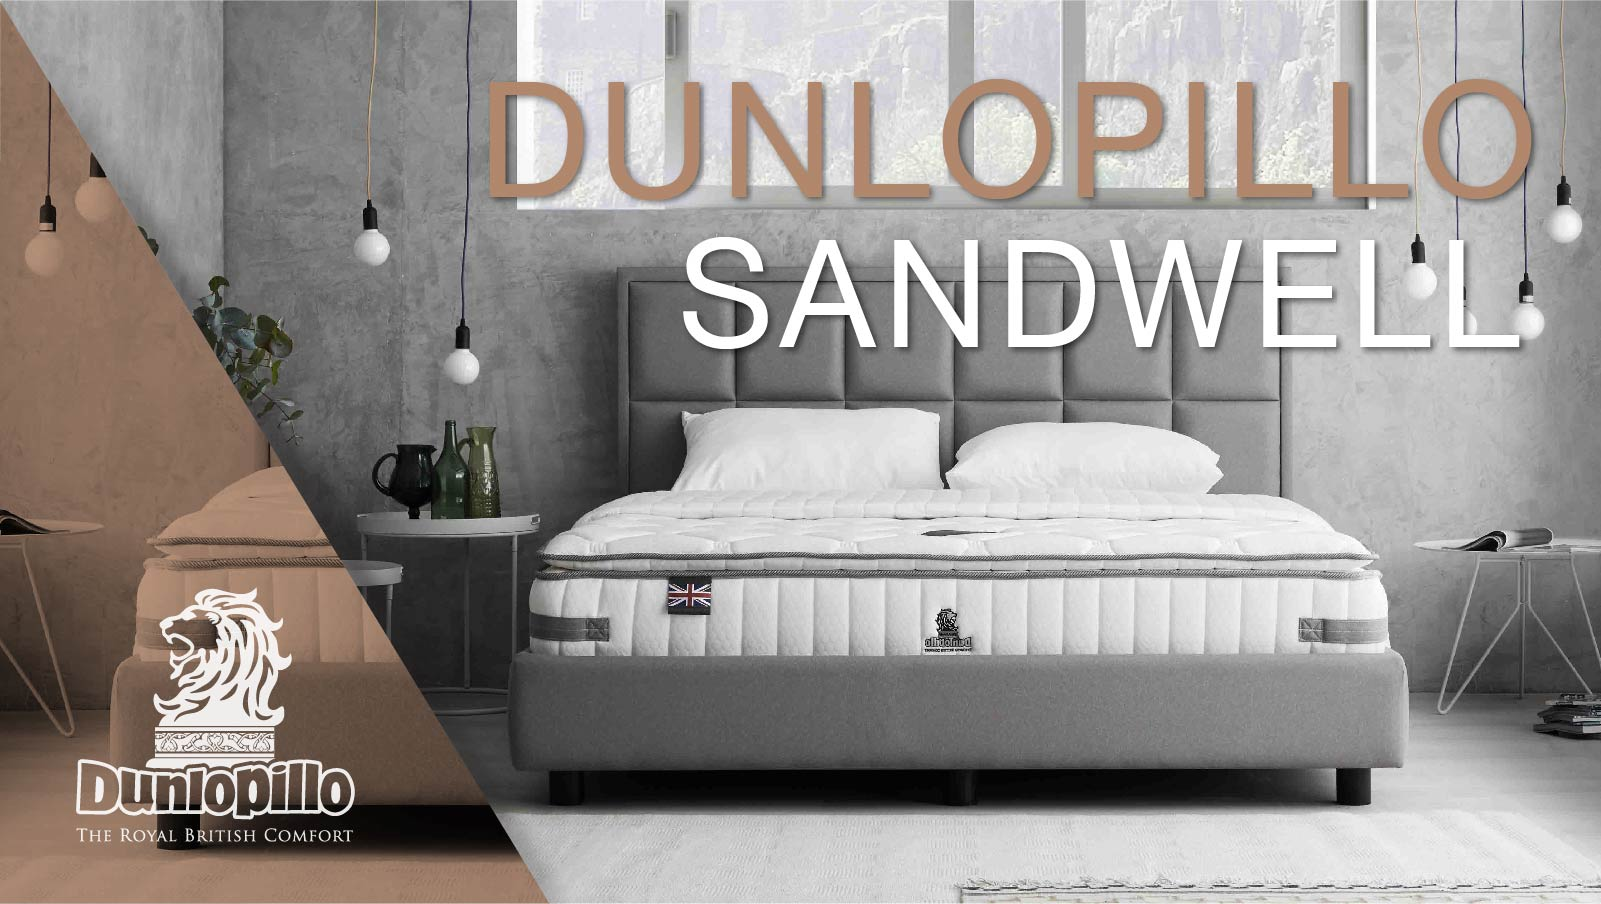 Dunlopillo Mattress - Sandwell